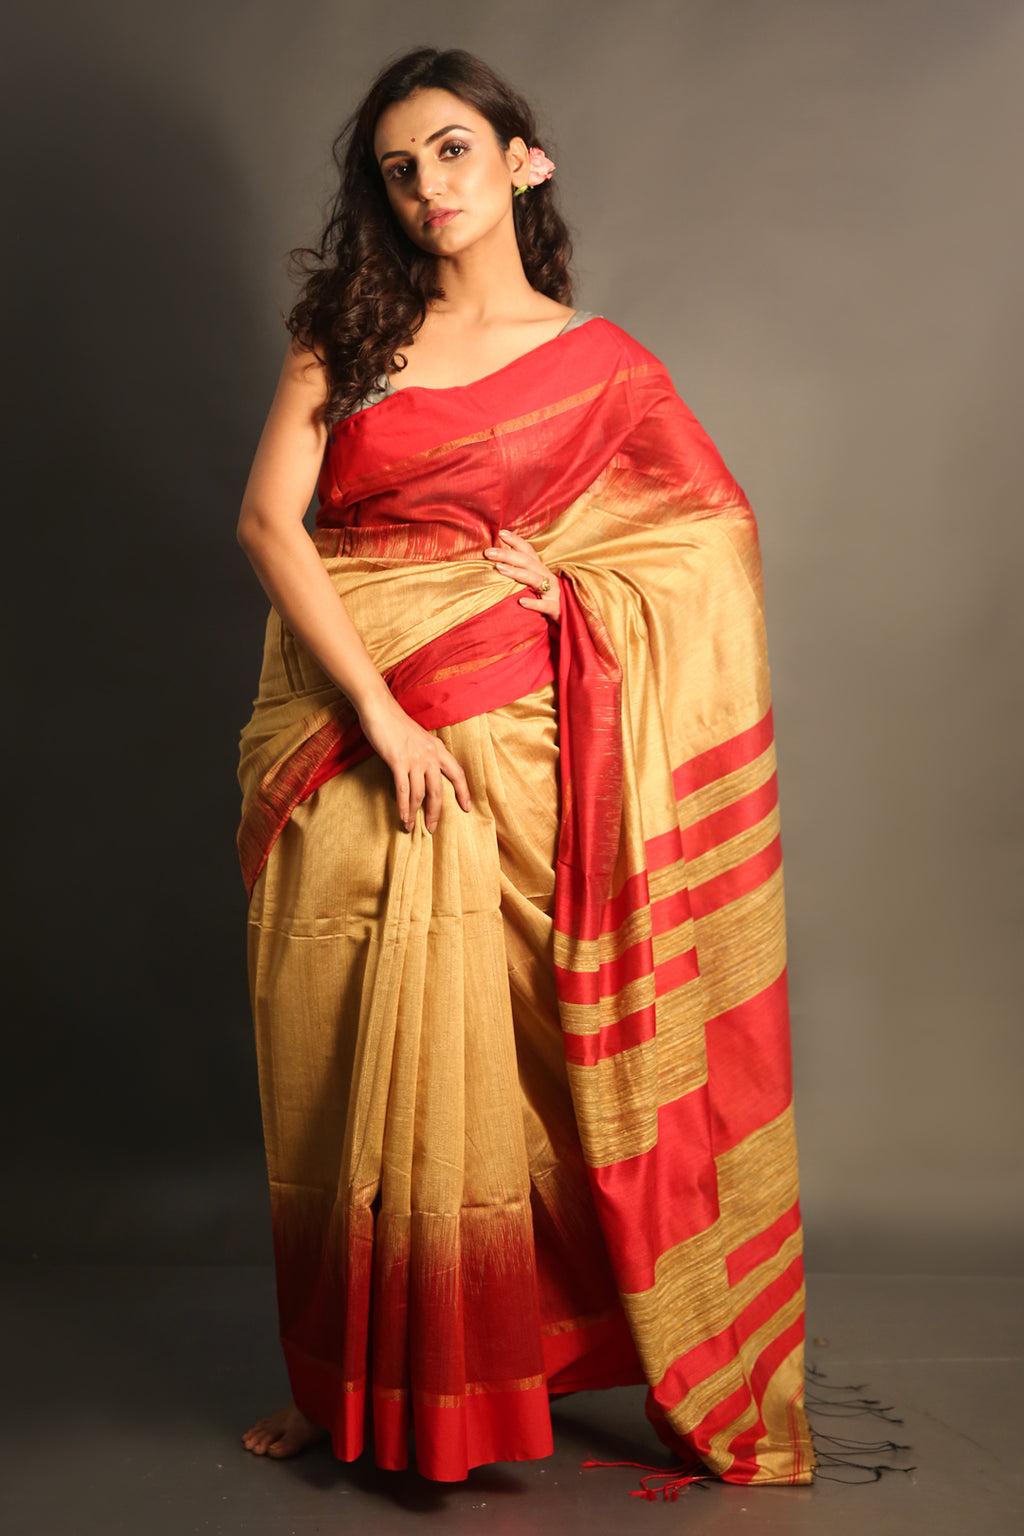 Beige Handloom Saree With Red Border And Pallu - charukriti.co.in